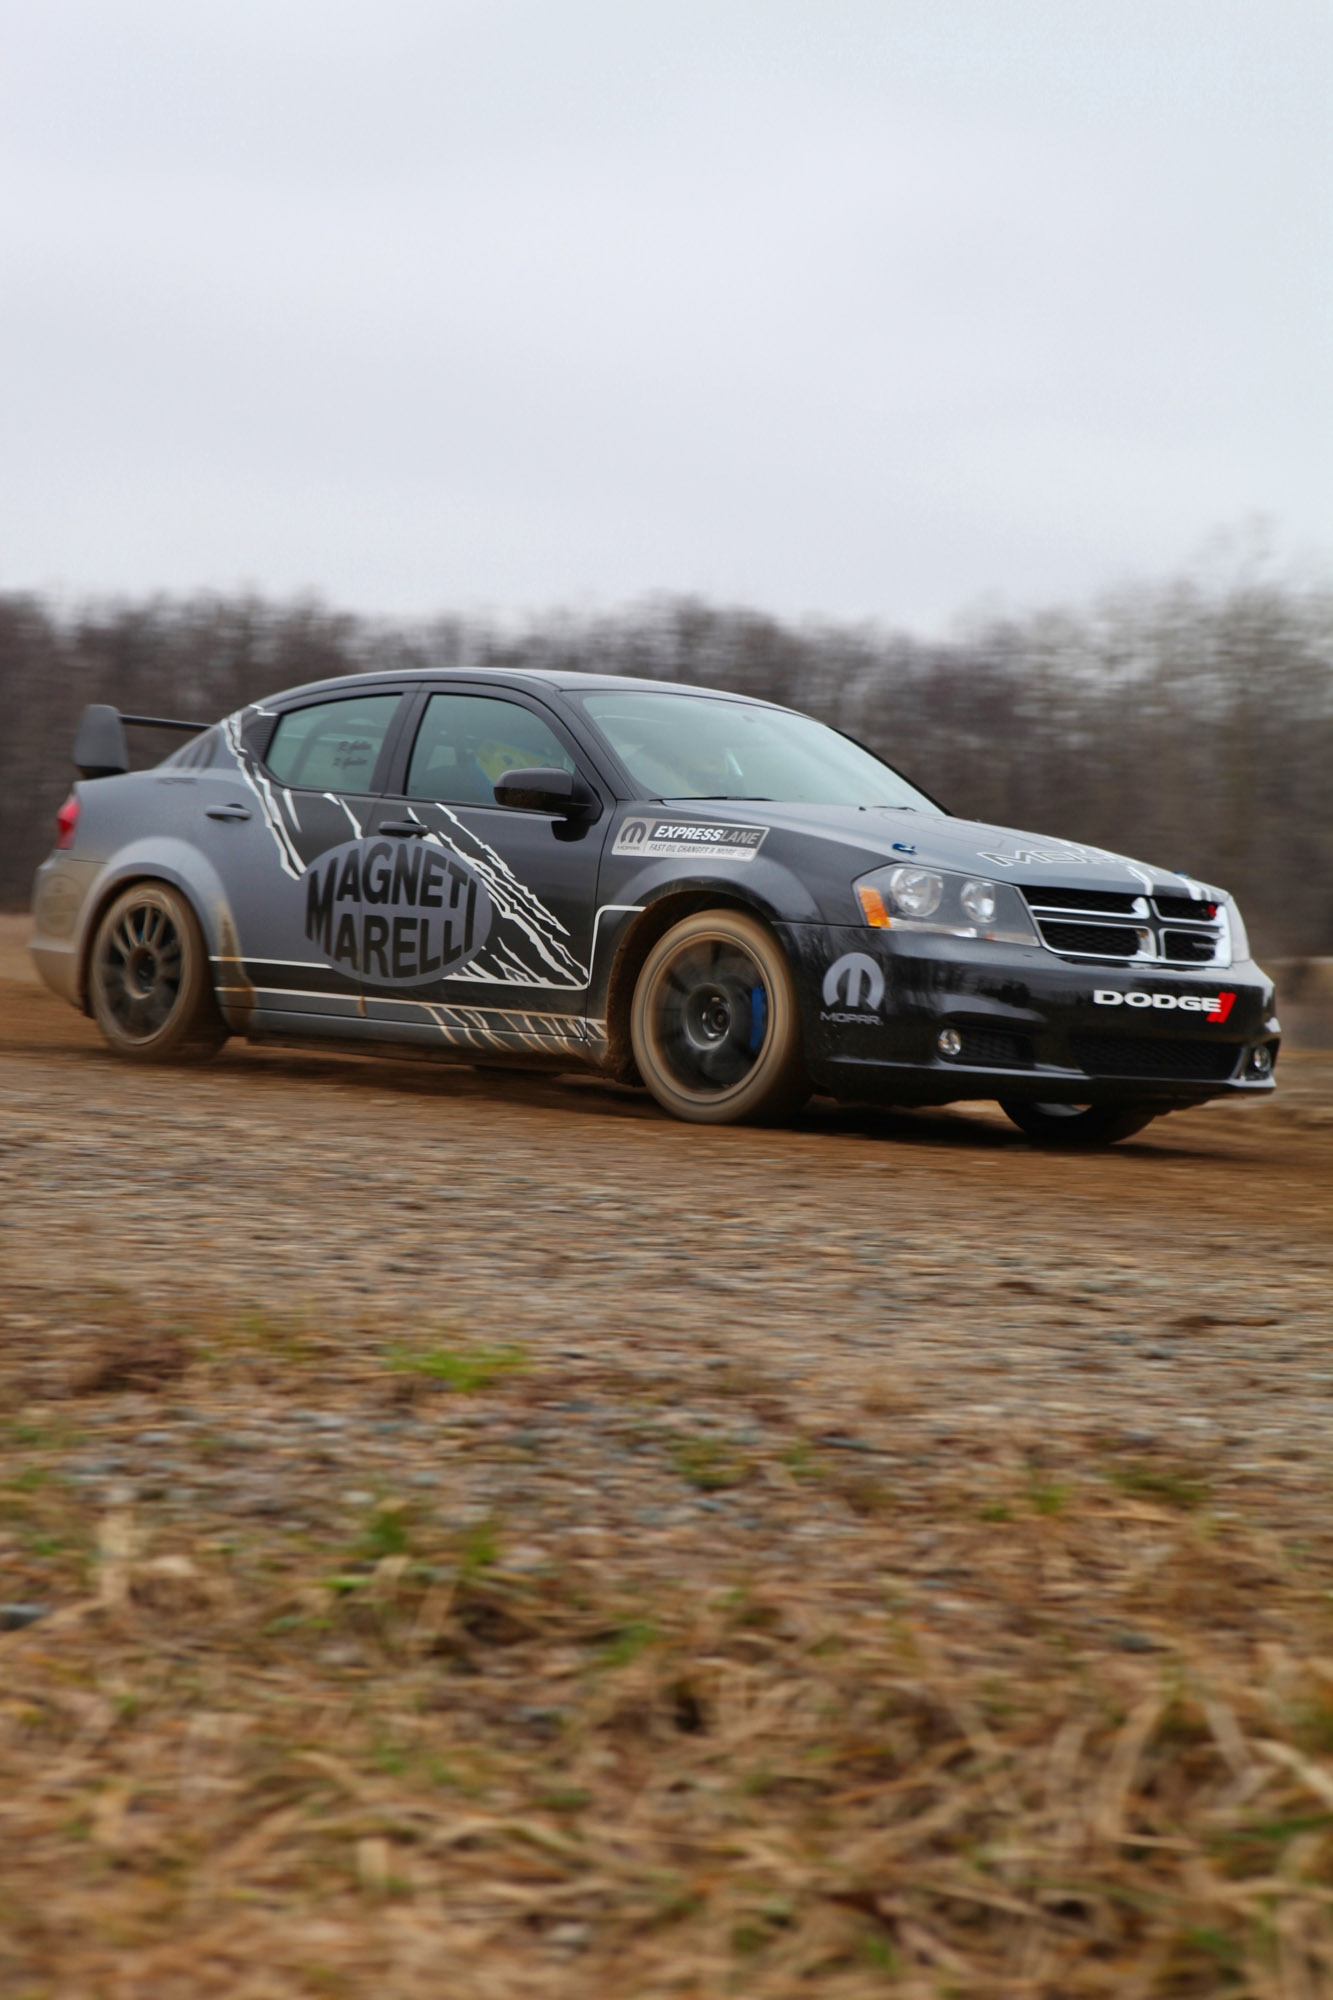 Dodge Avenger Rally Car Picture 4